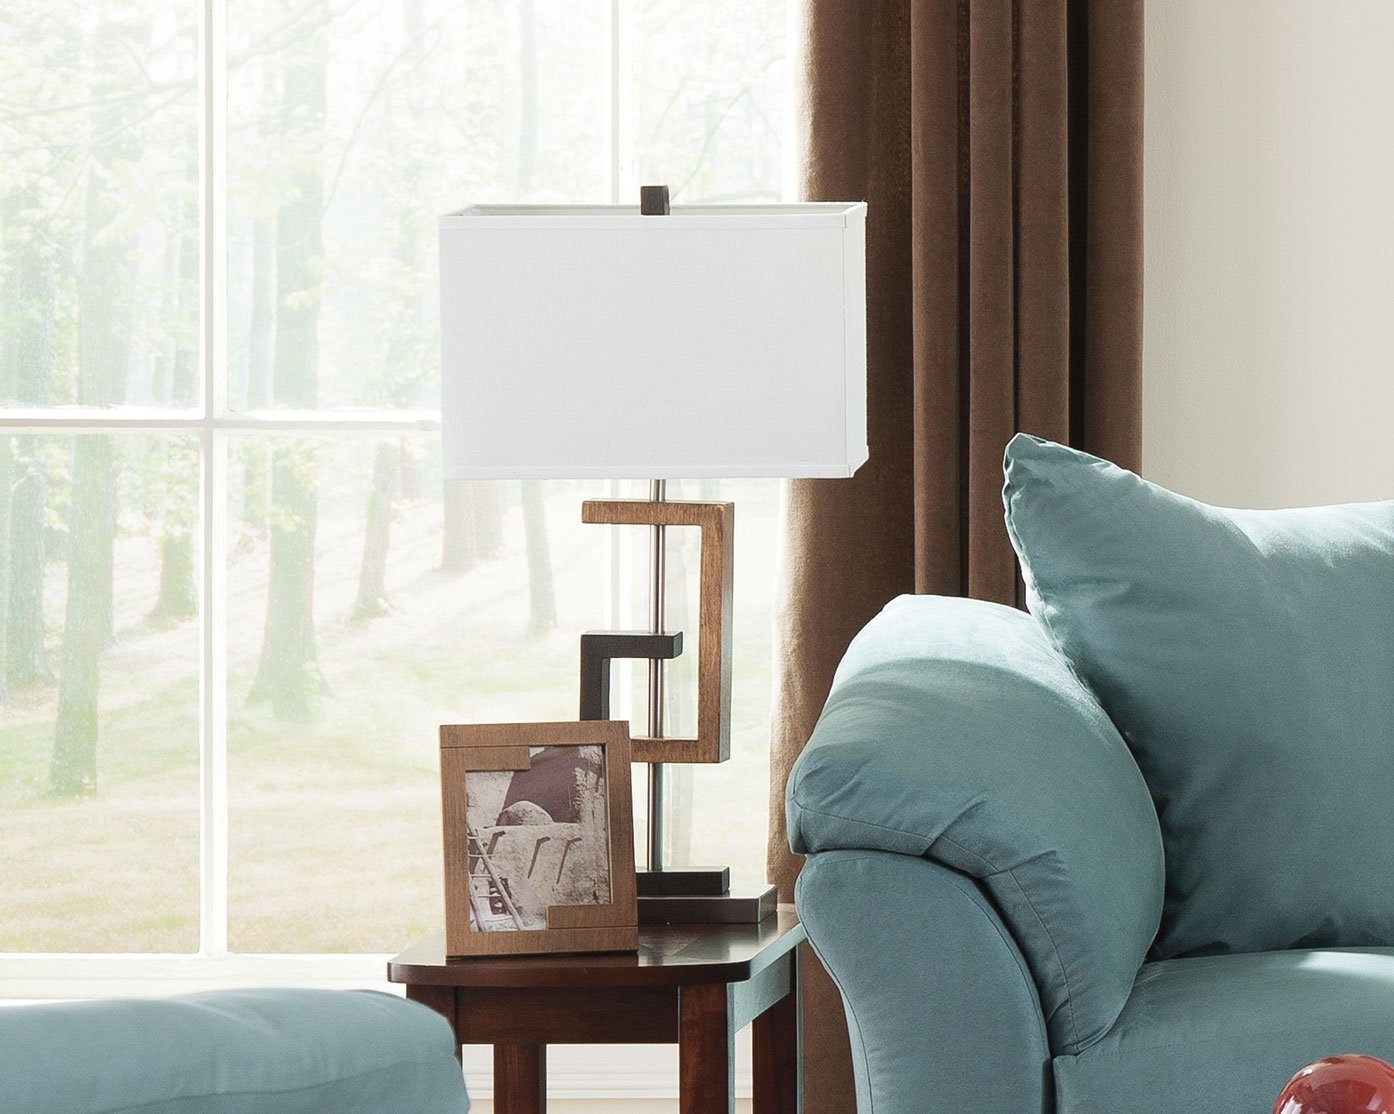 Ashley Furniture Signature Design - Syler Faux Wood Table Lamp - Contemporary Rectangular Shades - Set of 2 - Brushed Silver by Signature Design by Ashley (Image #3)